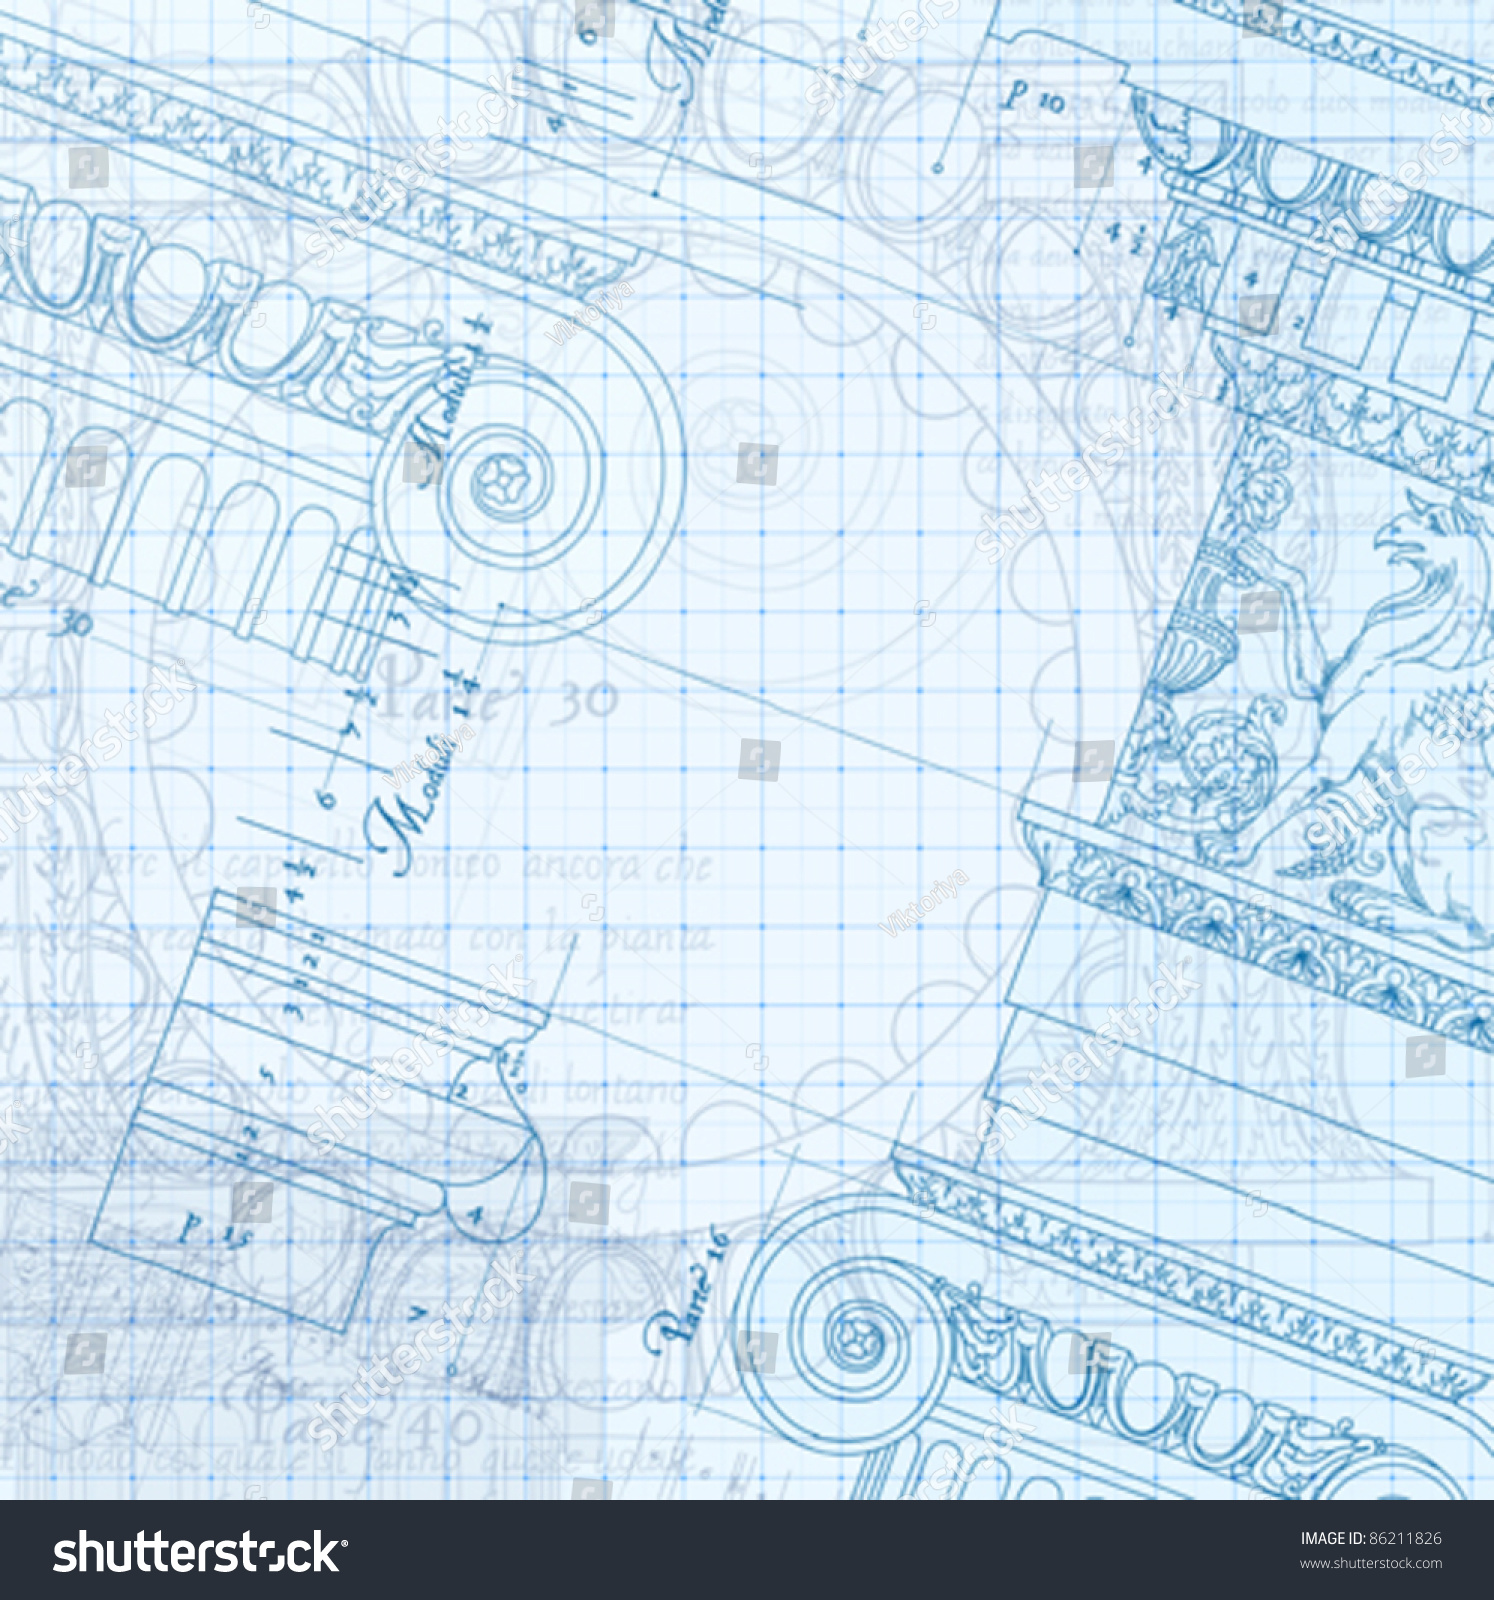 Architecture blueprint hand draw sketch ionic vectores en stock architecture blueprint hand draw sketch ionic architectural order based the five orders of architecture malvernweather Images